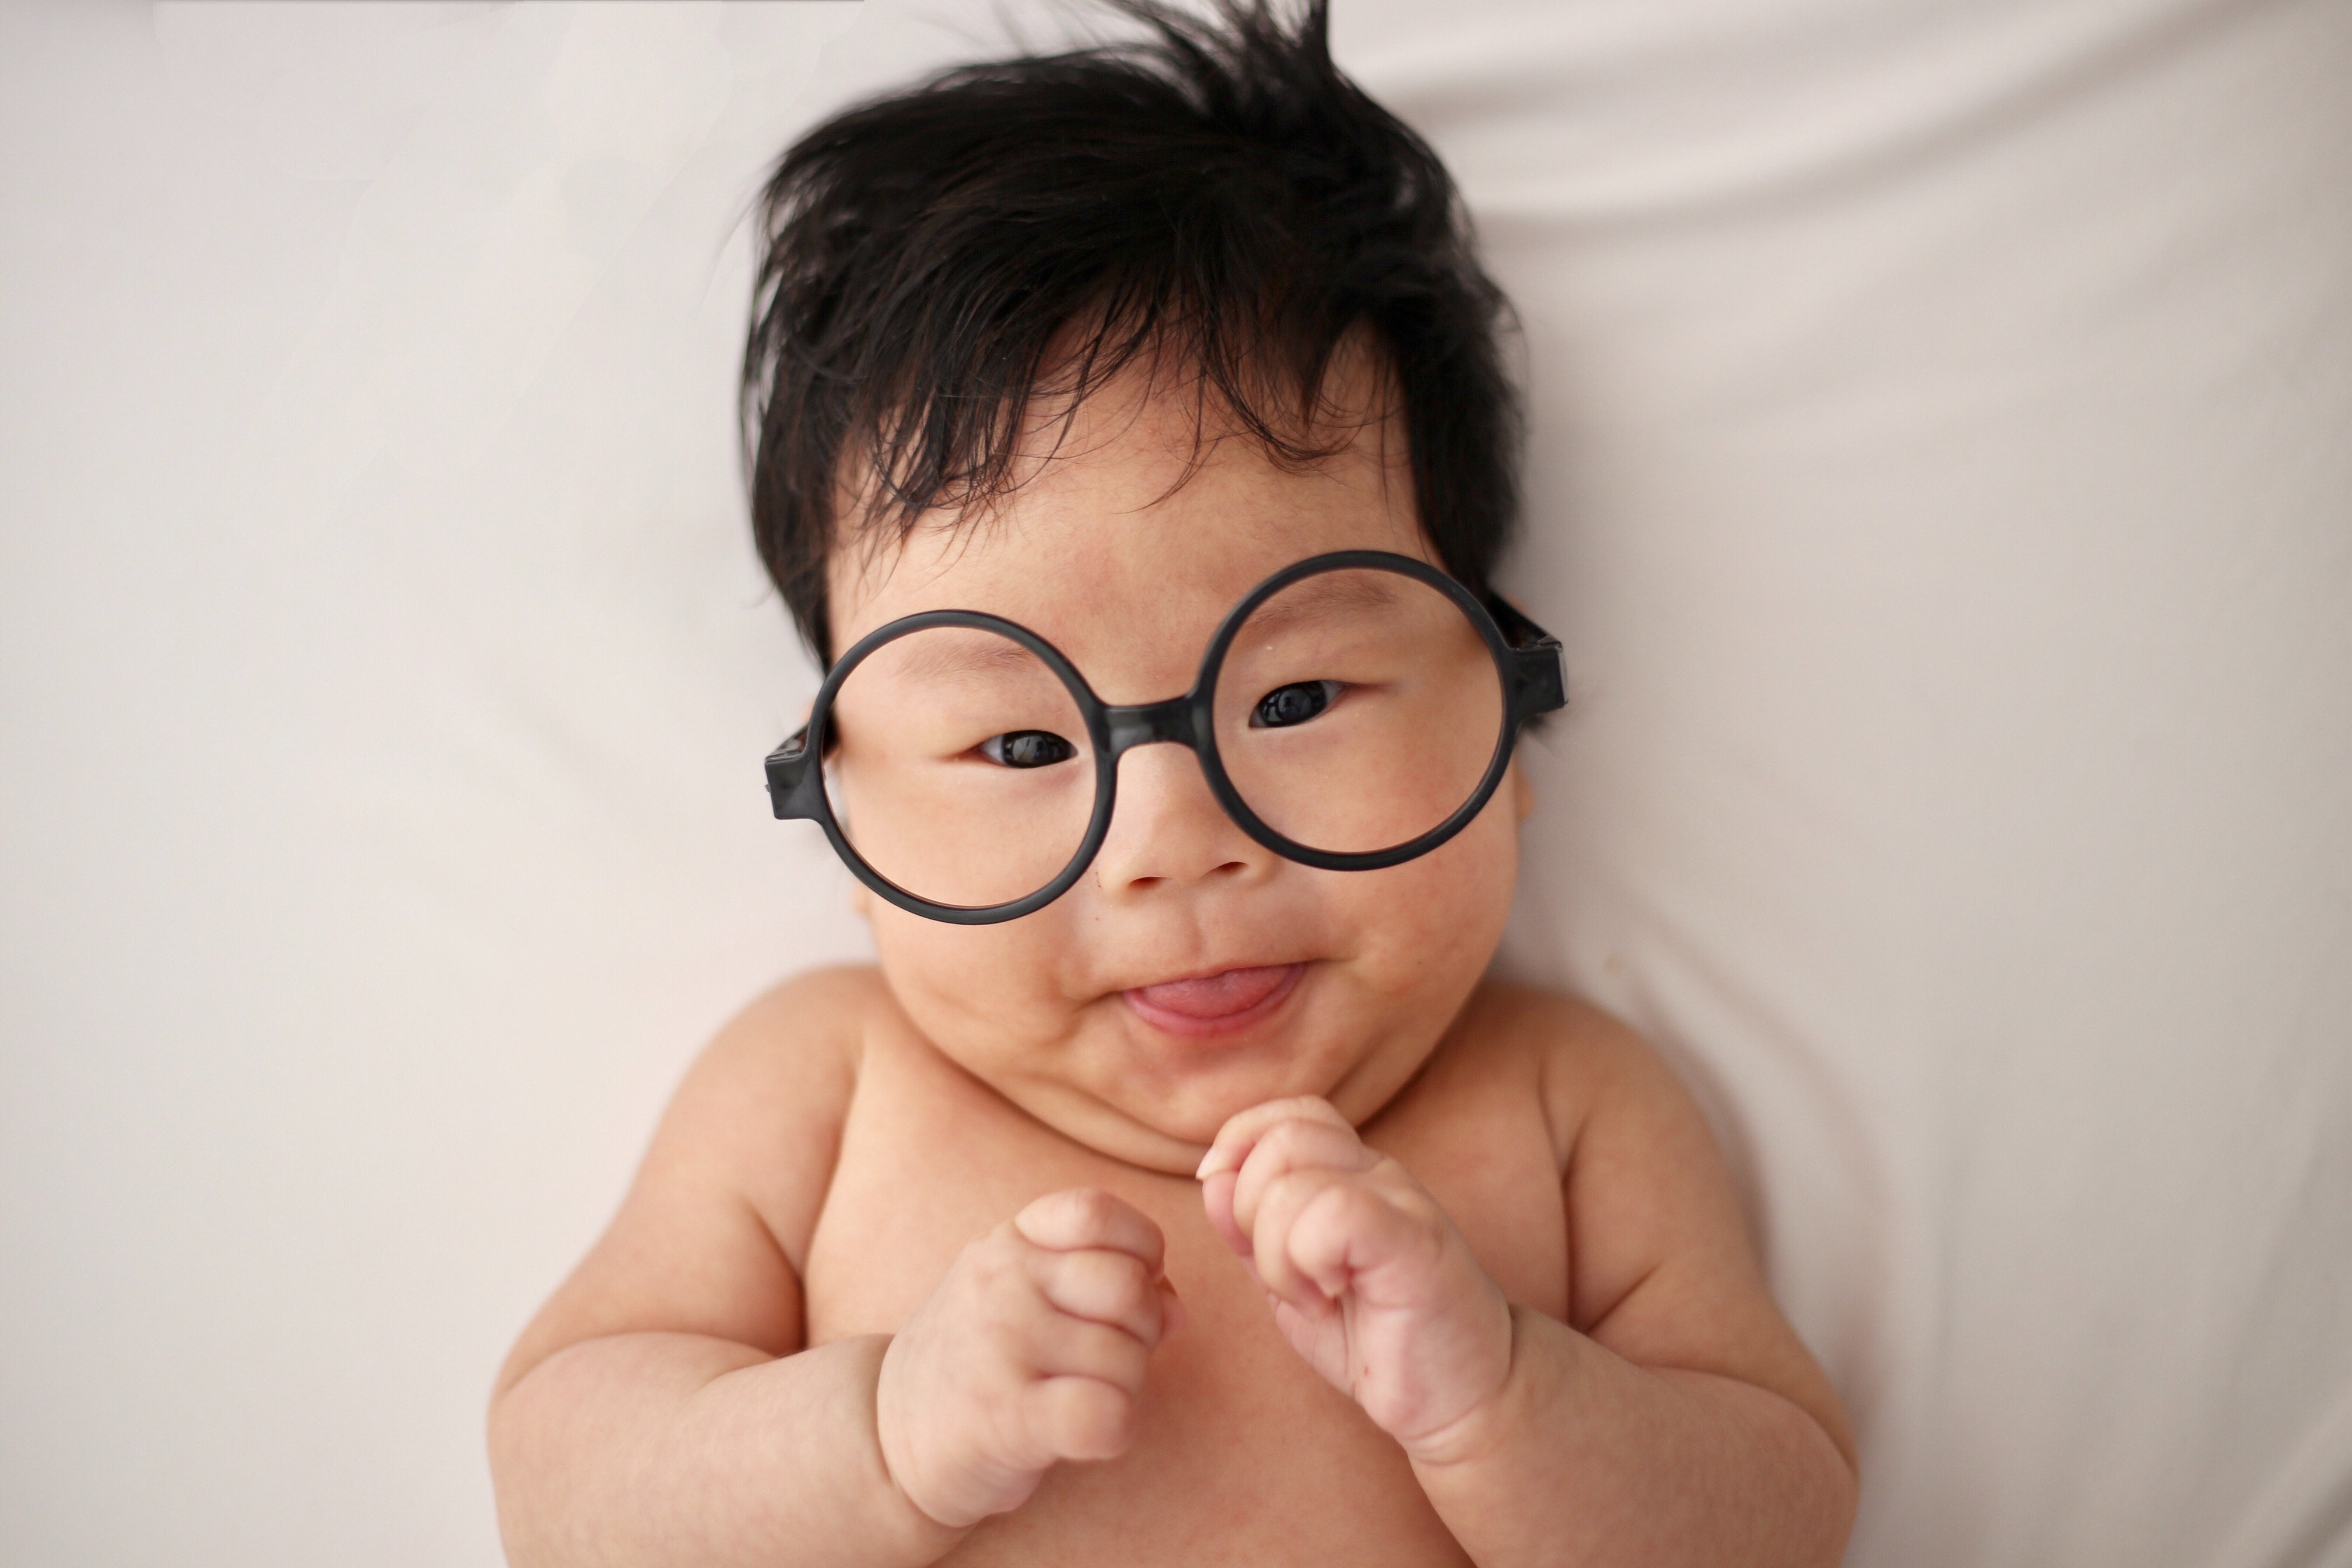 baby in over-sized glasses sticking its tongue out